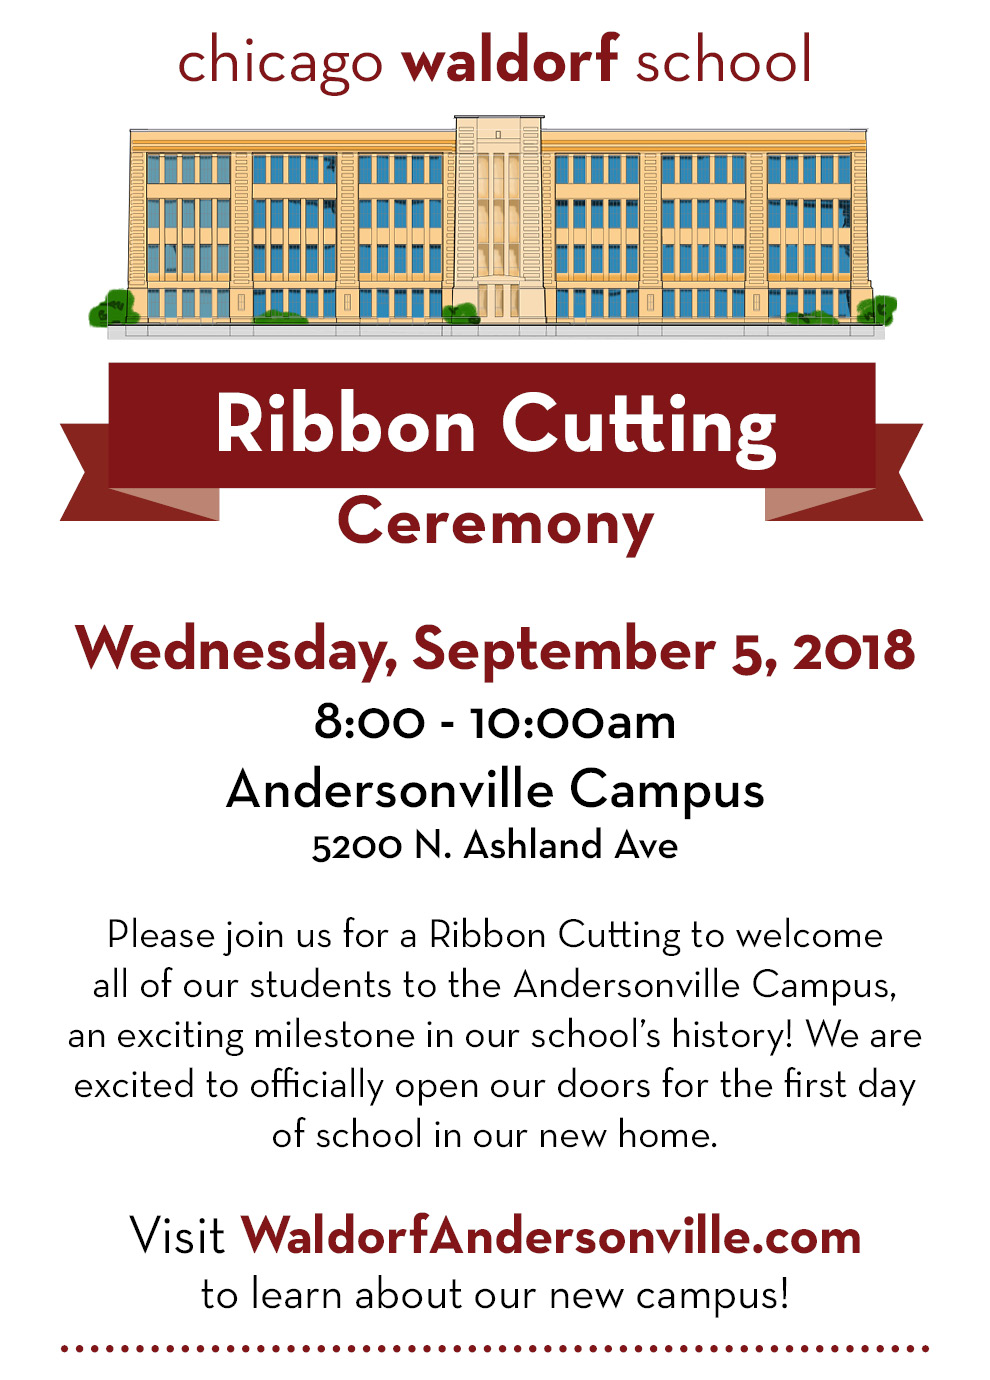 CWSRibbonCutting_Invite.jpg